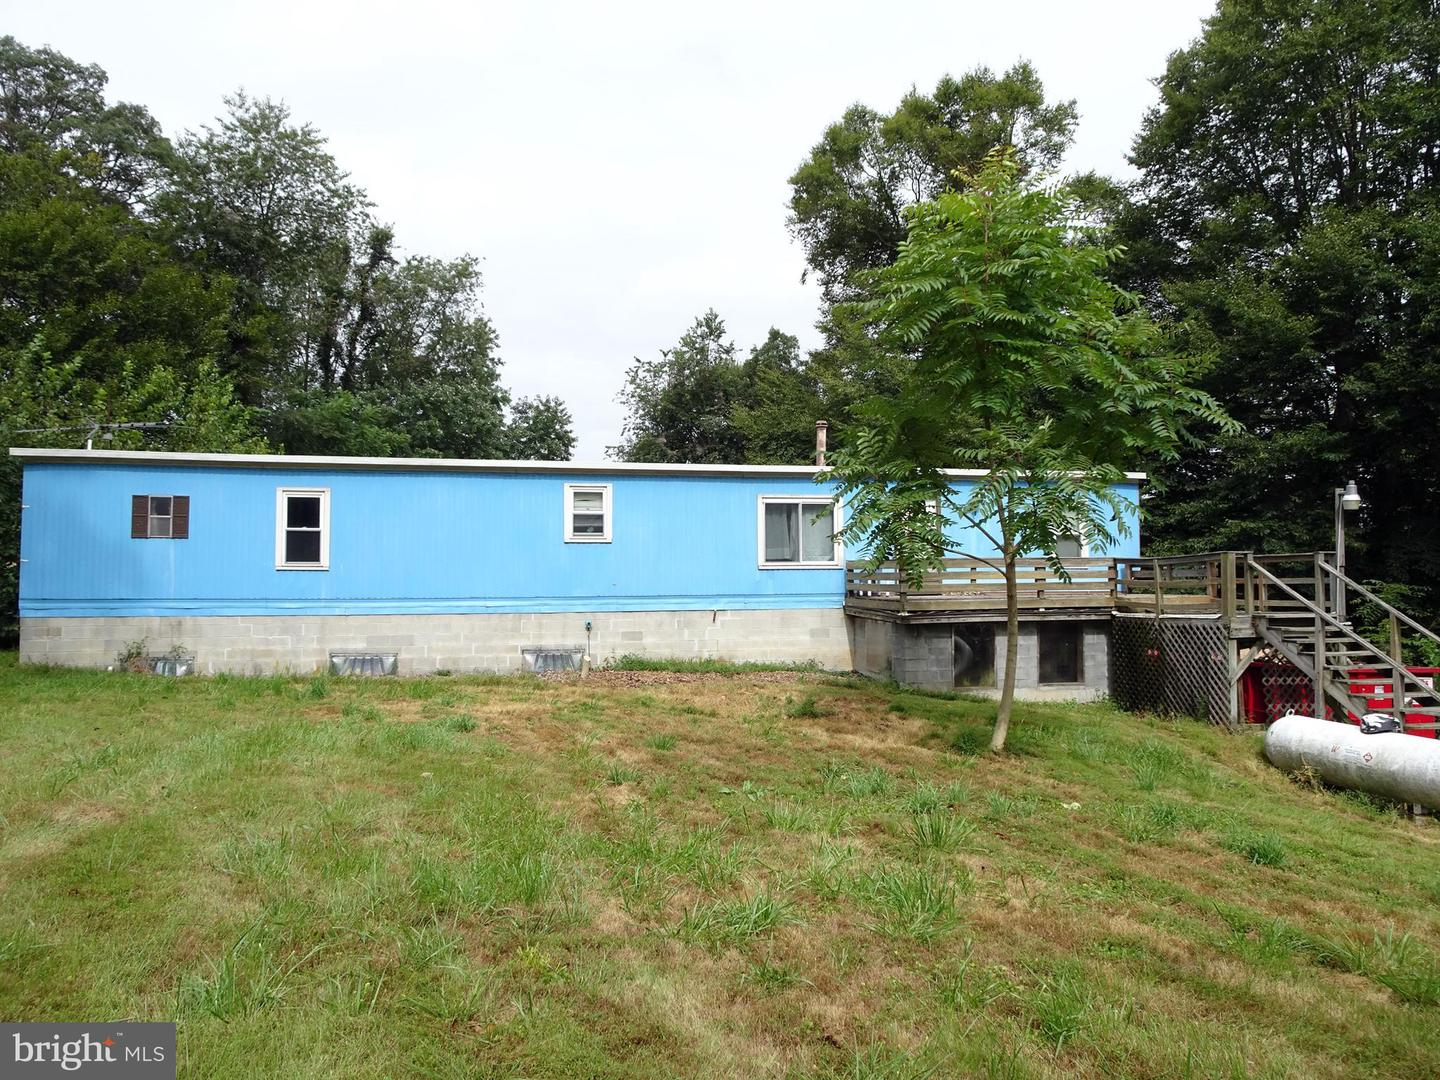 63 Orchard Dr Quarryville, PA 17566 on living mobile homes, pink mobile homes, single mobile homes, square mobile homes, red mobile homes, built mobile homes, silver mobile homes, small mobile homes, black mobile homes, elevated mobile homes, restored mobile homes, large mobile homes, california mobile homes, garden mobile homes, blue mobile homes, brown mobile homes, love mobile homes, white mobile homes, sold mobile homes, lifted mobile homes,